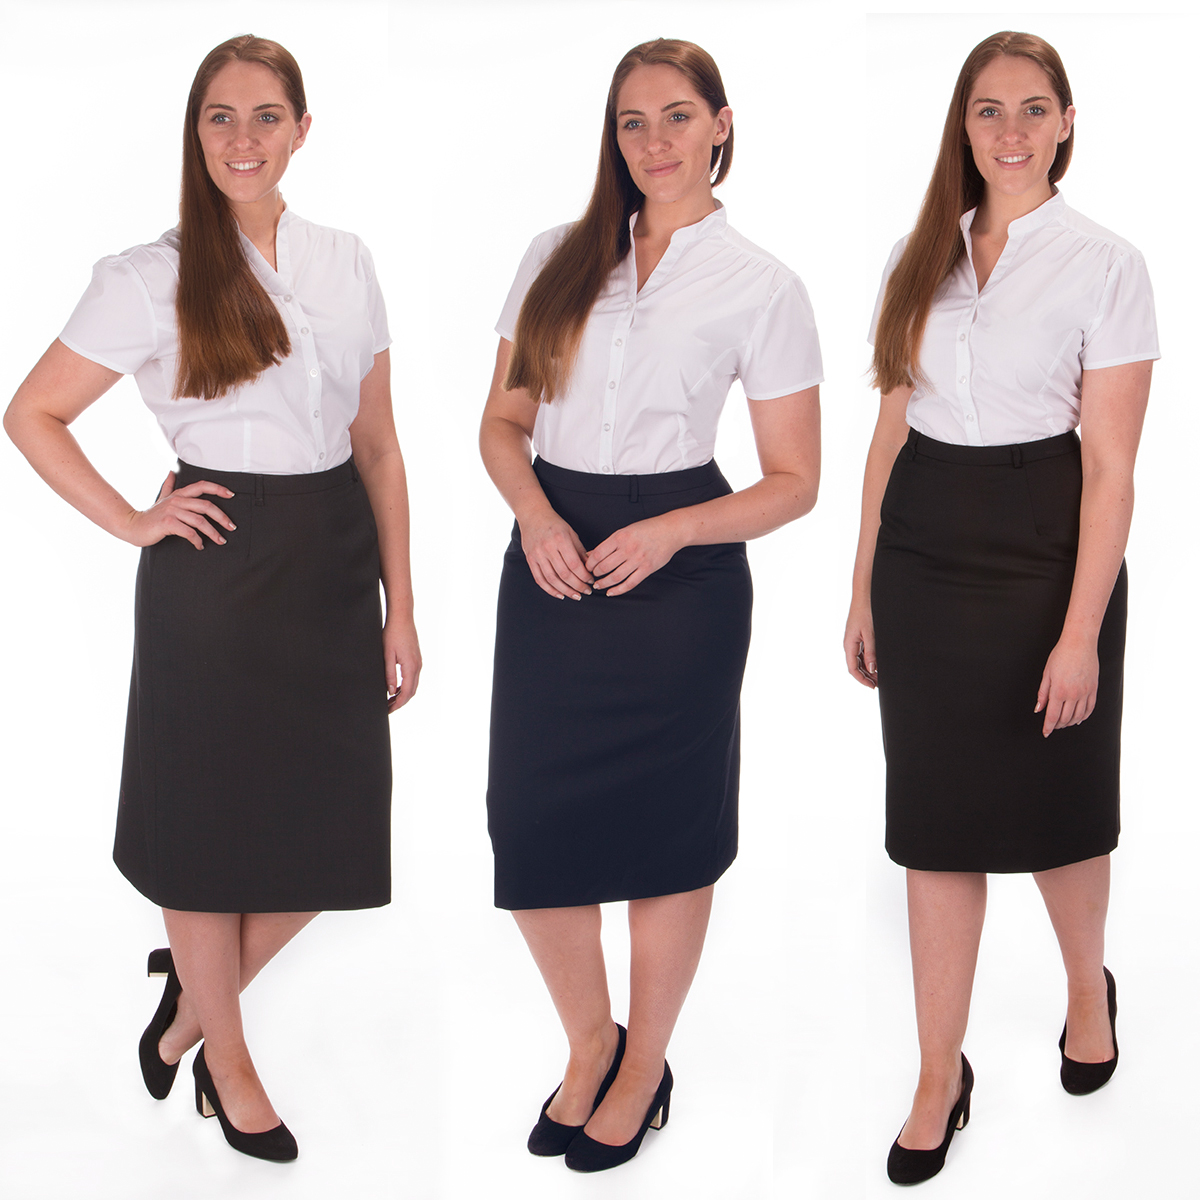 Women S Plus Size Bodycon Zip Pencil Skirt Formal Office Workwear Uk 16 26 New